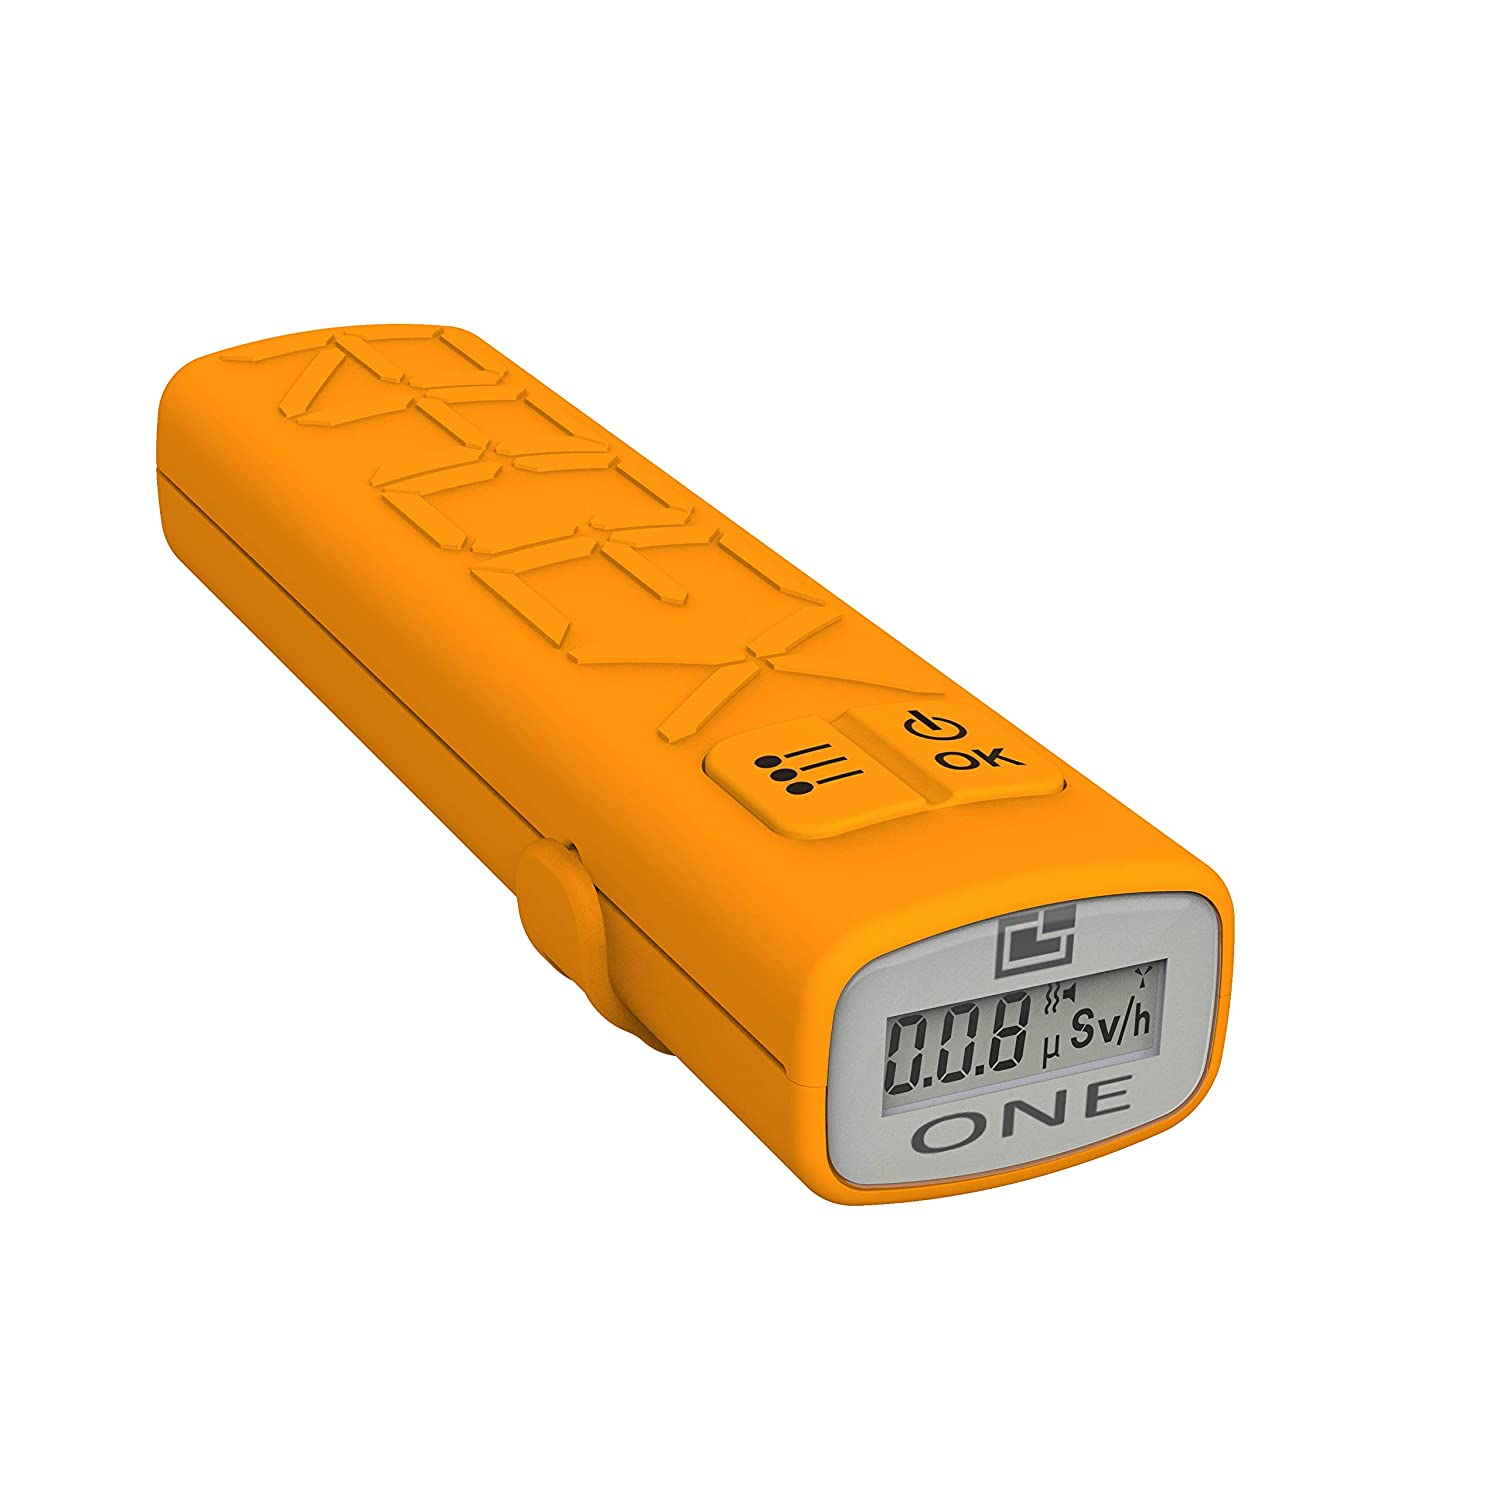 "RADEX ONE Personal RAD Safety""Outdoor Edition"" High Sensitivity Compact Personal Dosimeter, Geiger Counter, Nuclear Radiation Detector w/Software"